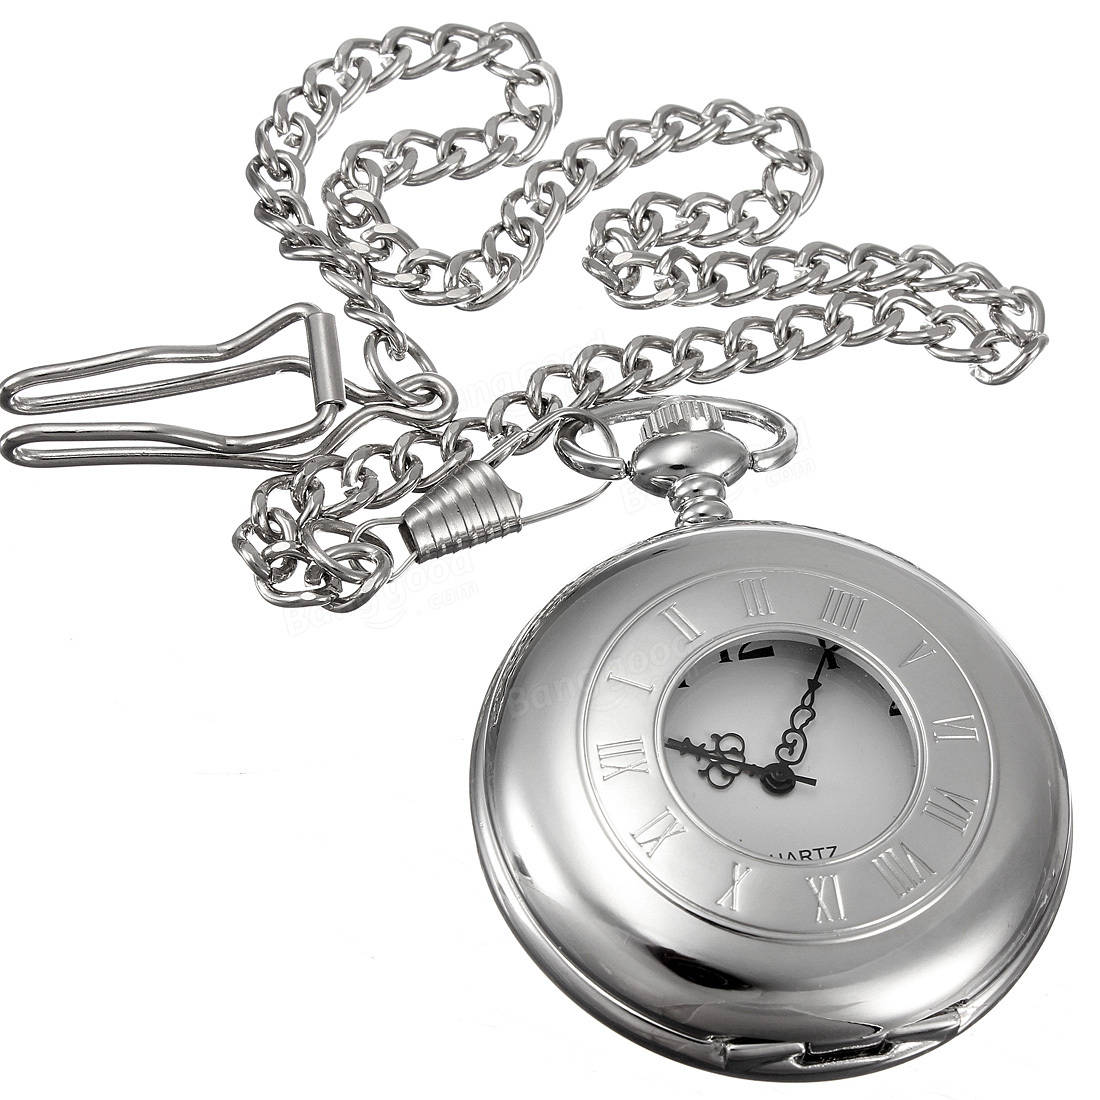 Antique Style Stainless Steel Silver Tone Quartz Pocket Watch Chain